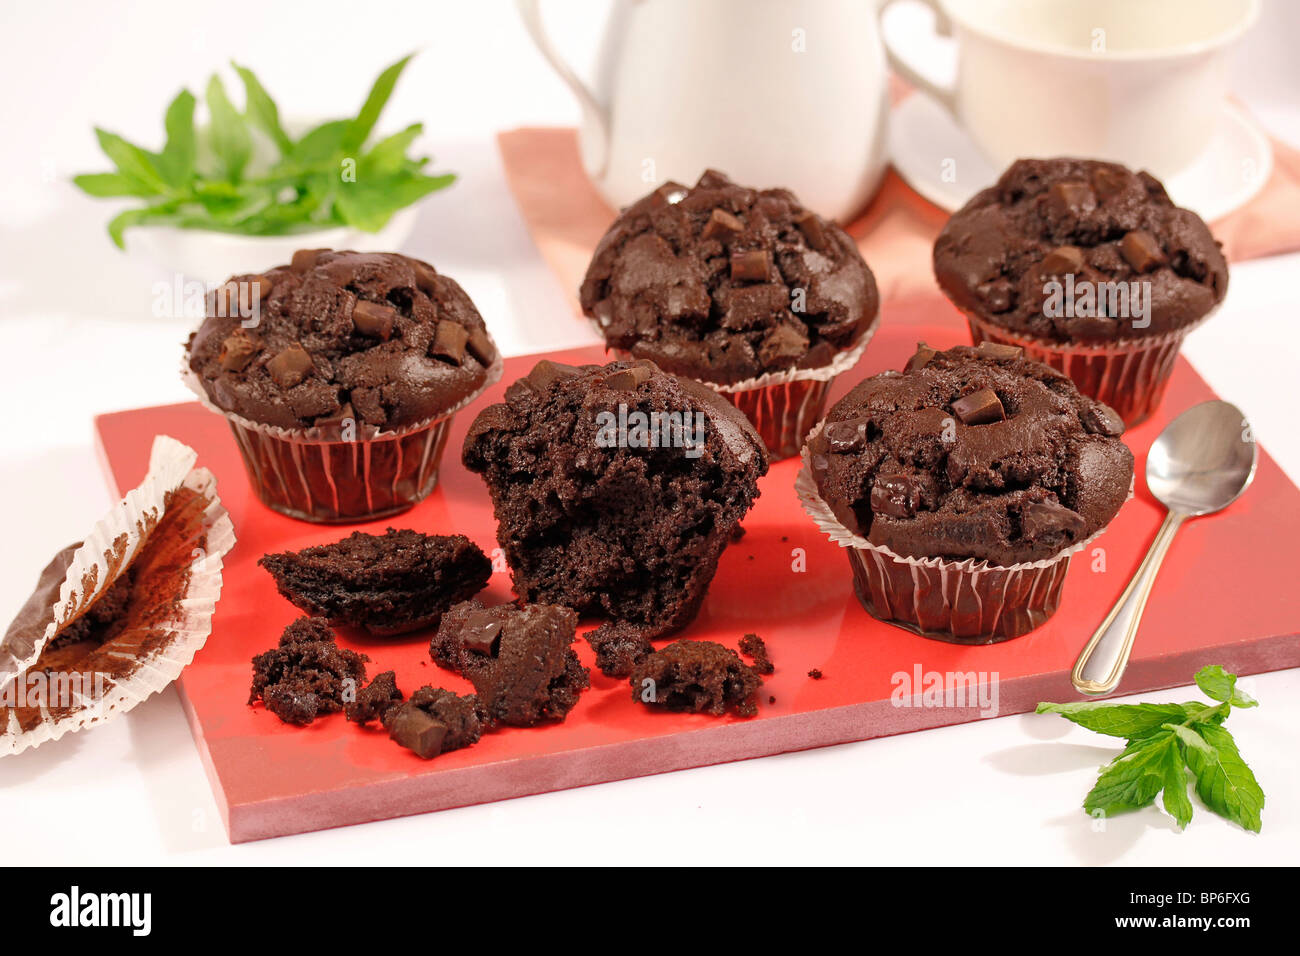 Giant chocolate muffins. Recipe available. - Stock Image